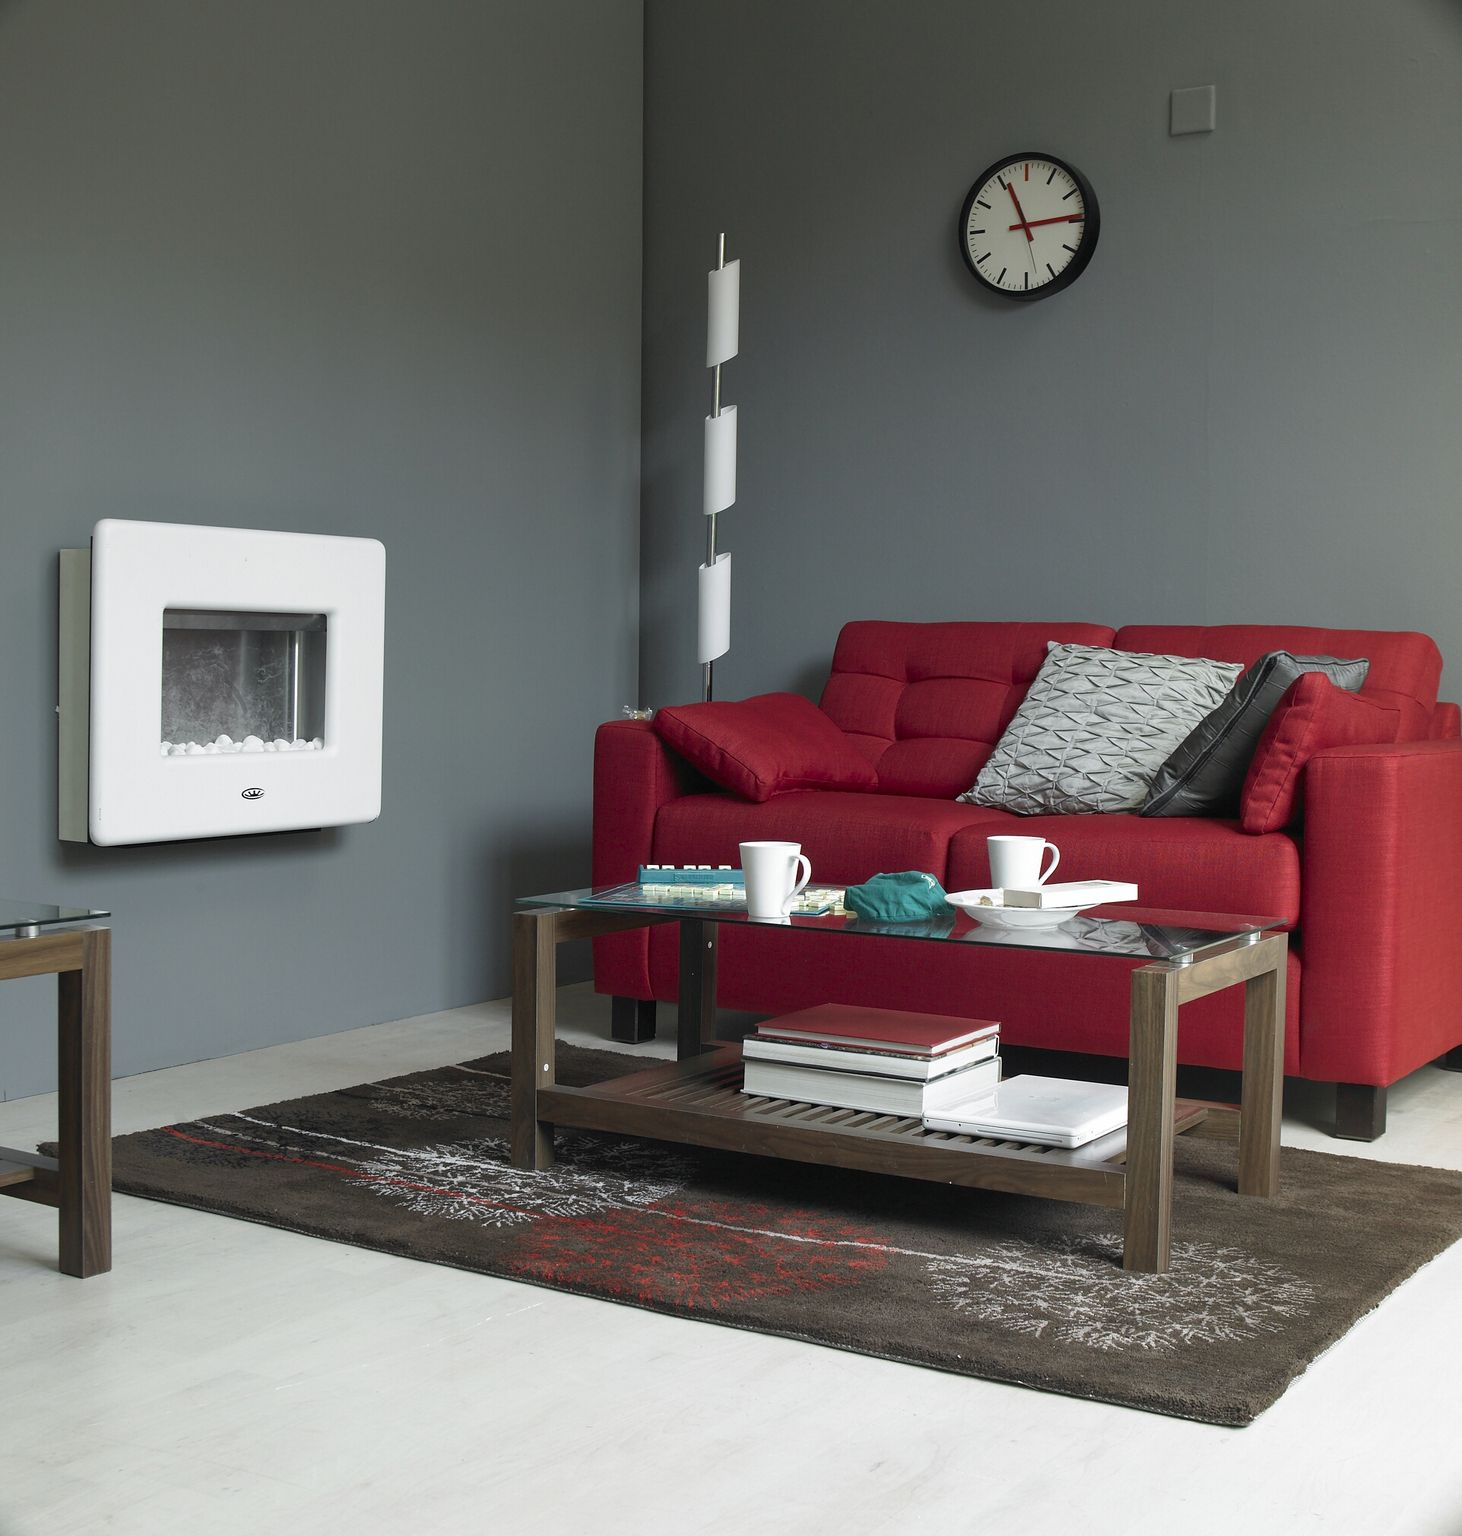 Living Room With Red Sofa Room Small Character Grey Living Room Design Filled By Red Sofa